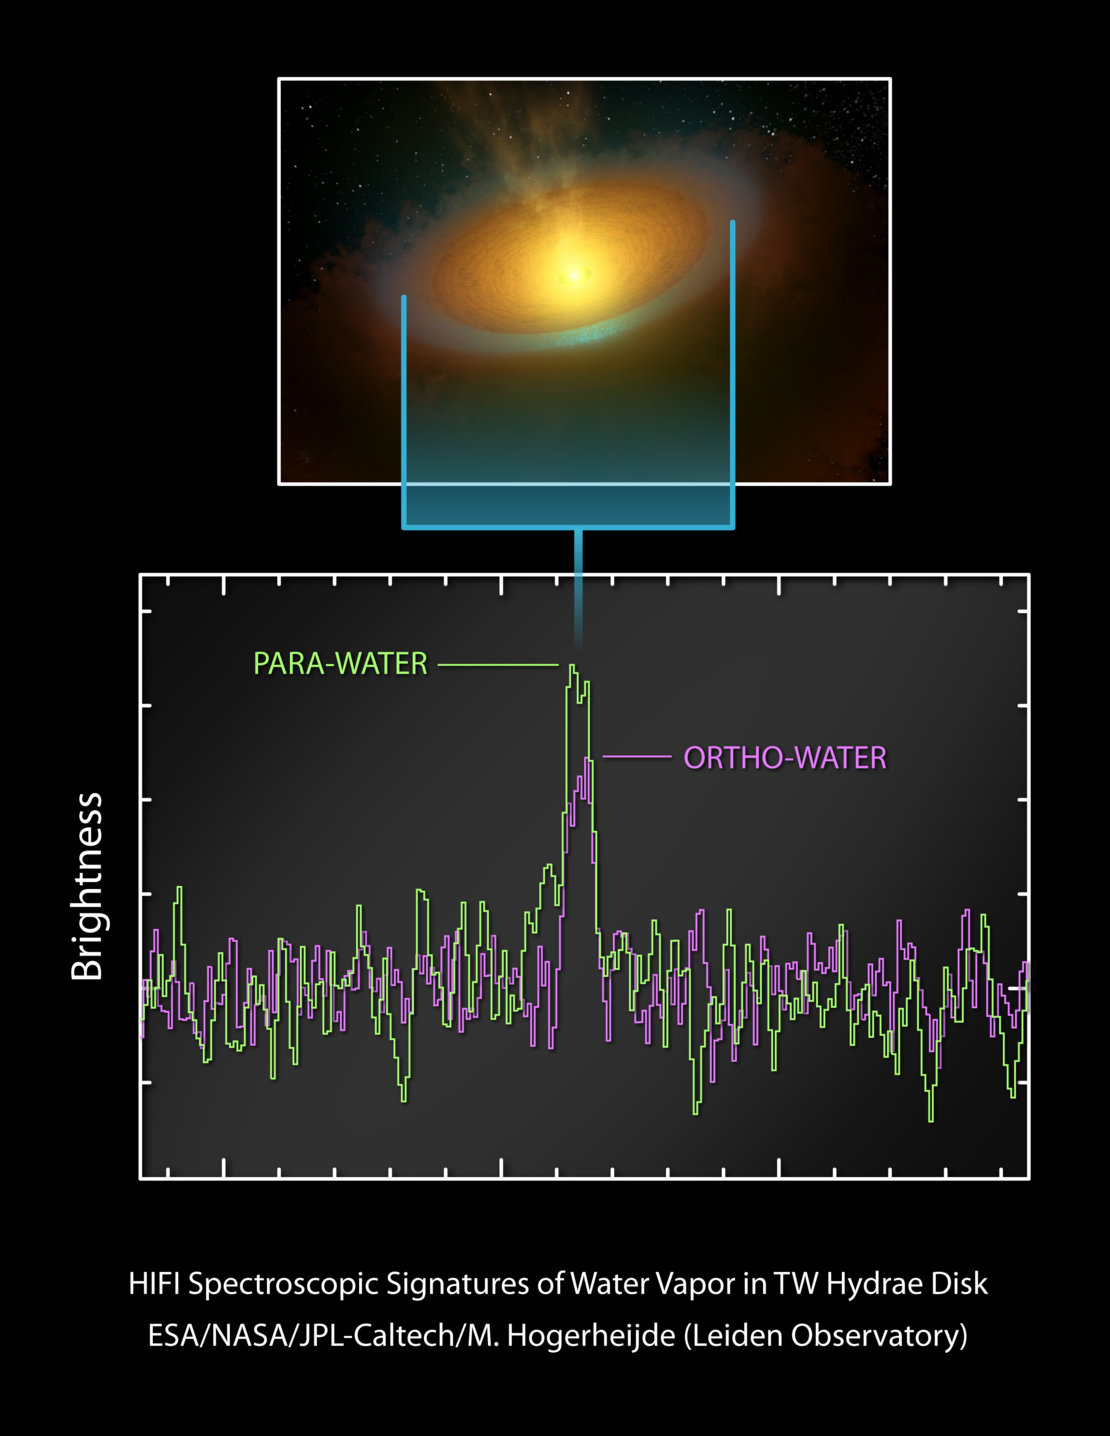 Detection of water vapour in the spectrum of TW Hydrae's protoplanetary disc